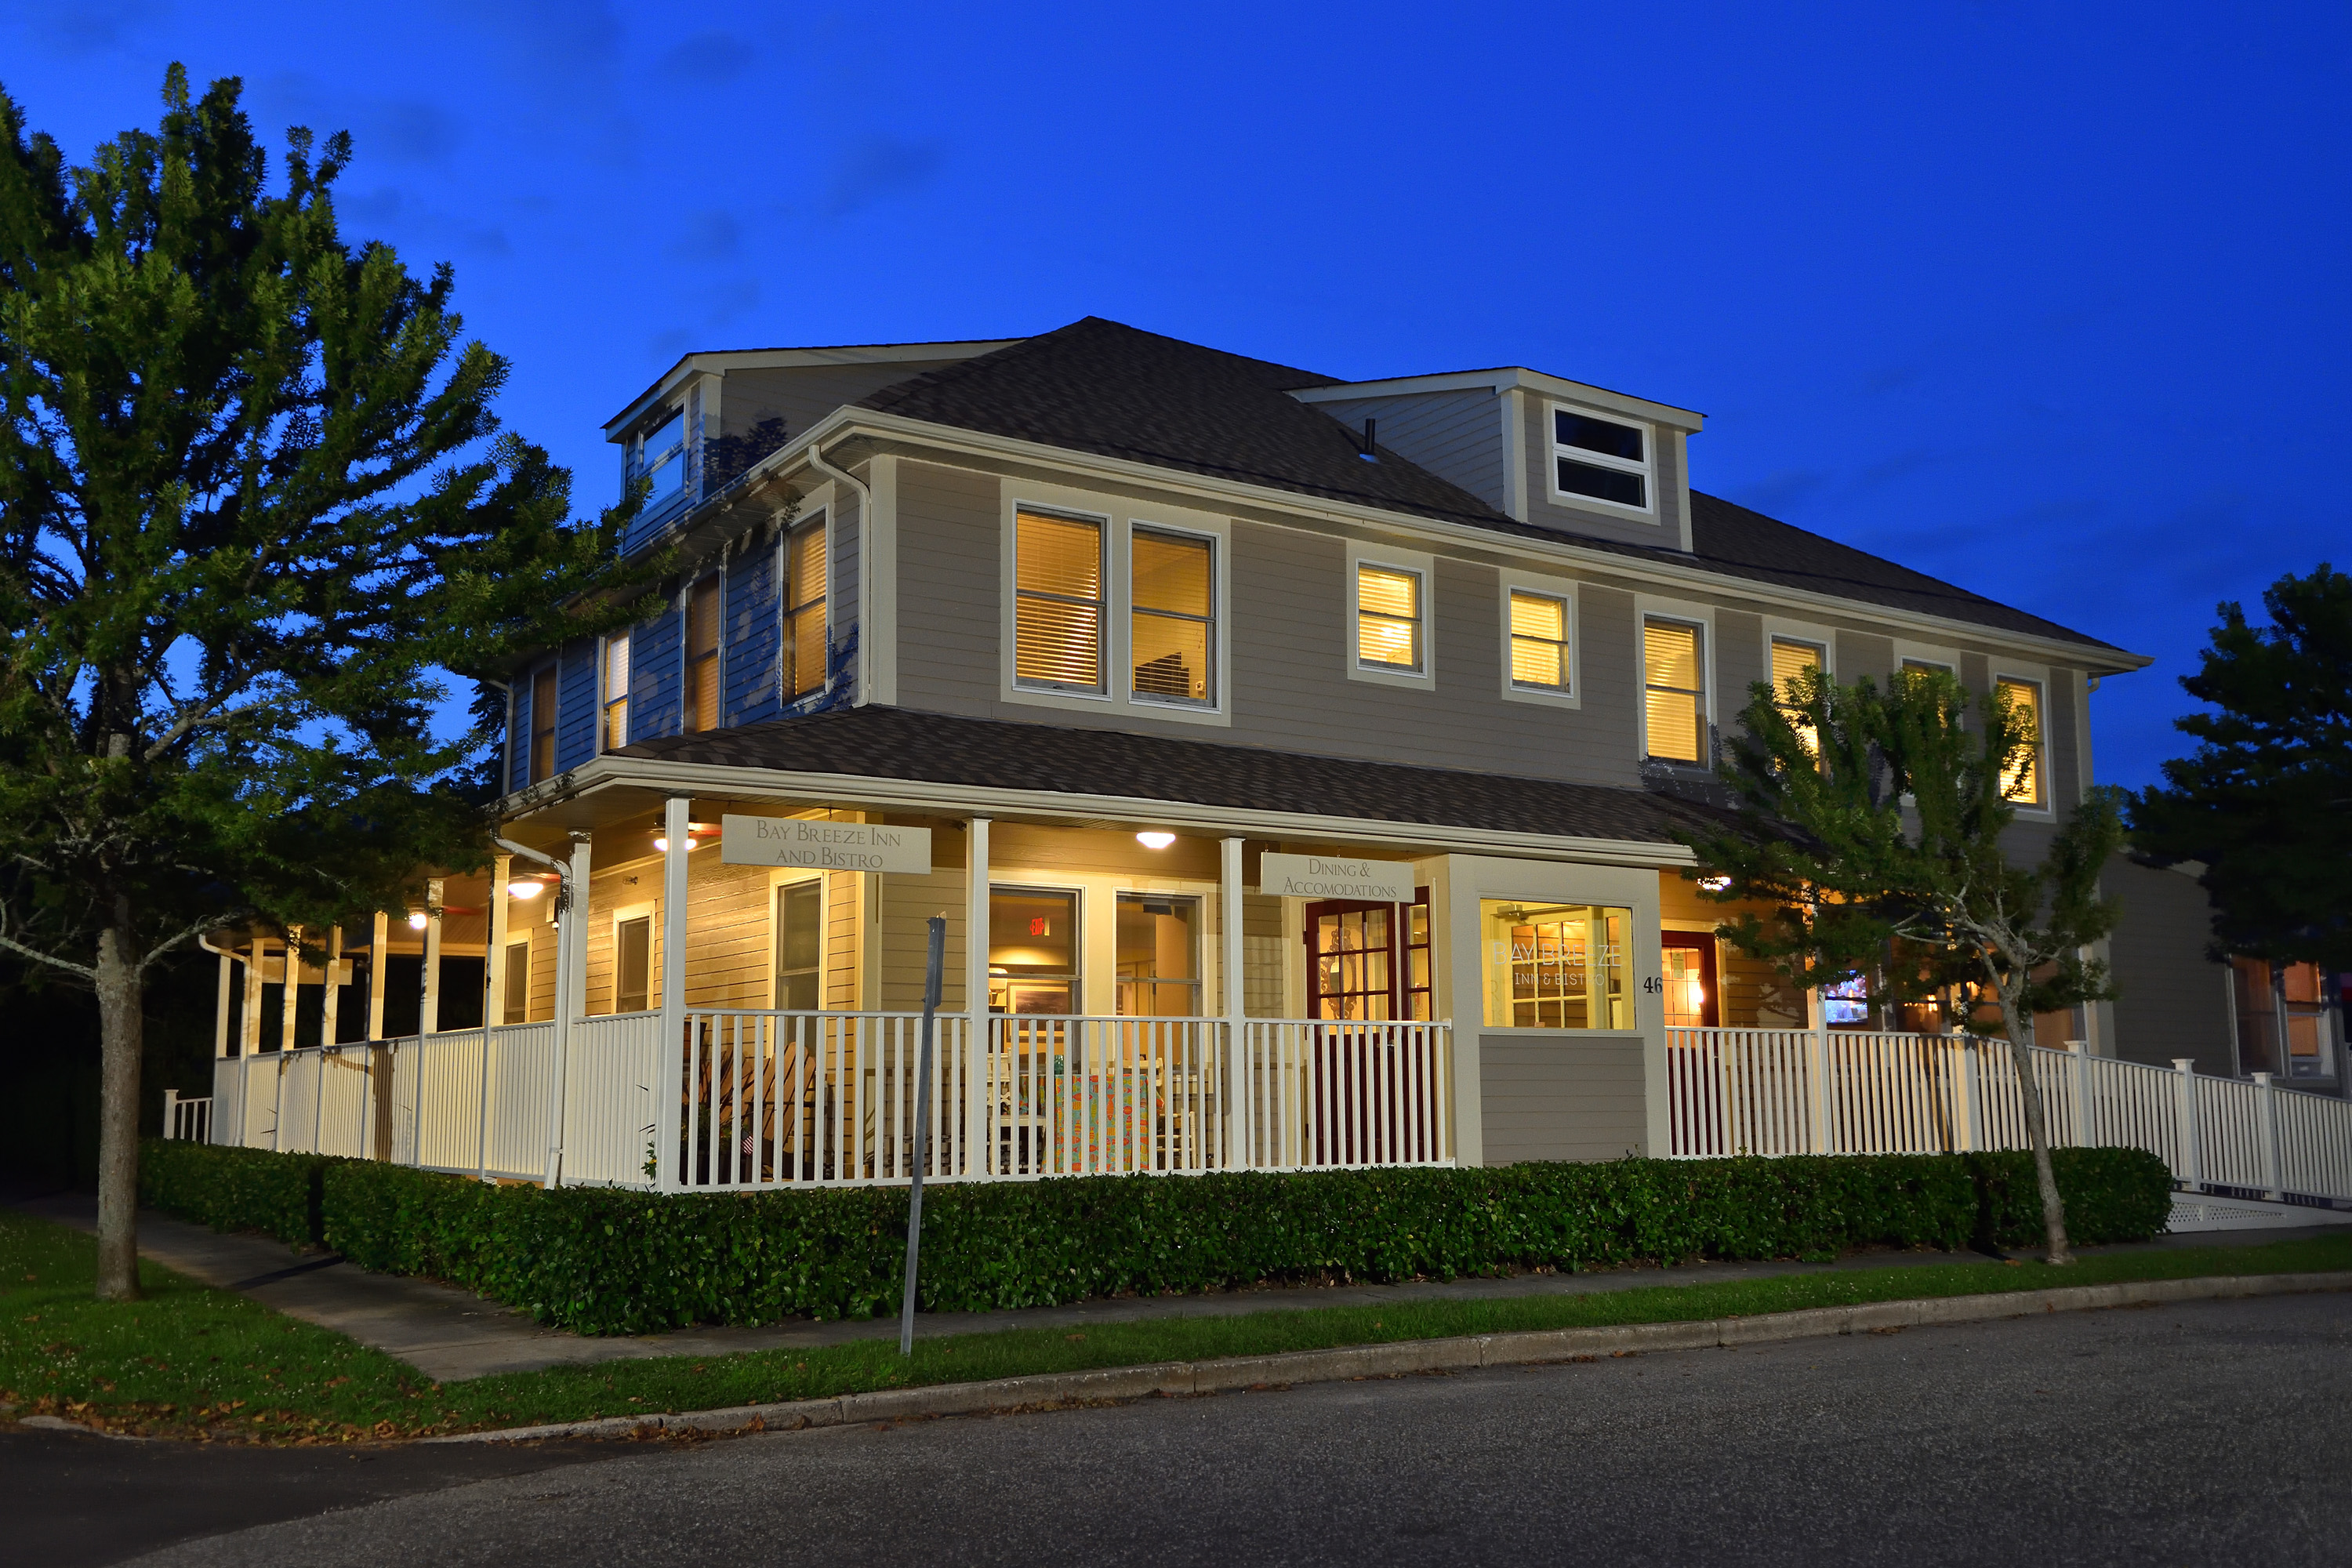 Stunning, Turn Key, Furnished Inn and Restaurant.  Located in a Bucolic Beach Community, this Property Boasts a Large Lobby, 7 En-Suite Guest Bedrooms, 52 Seat Restaurant, Full Bar, Separate 2 Unit Cottage and Ample Parking.  Sit on the Wrap Around Porch and Enjoy the Beautiful View!  Opportunities for a Property Such as this are Endless.